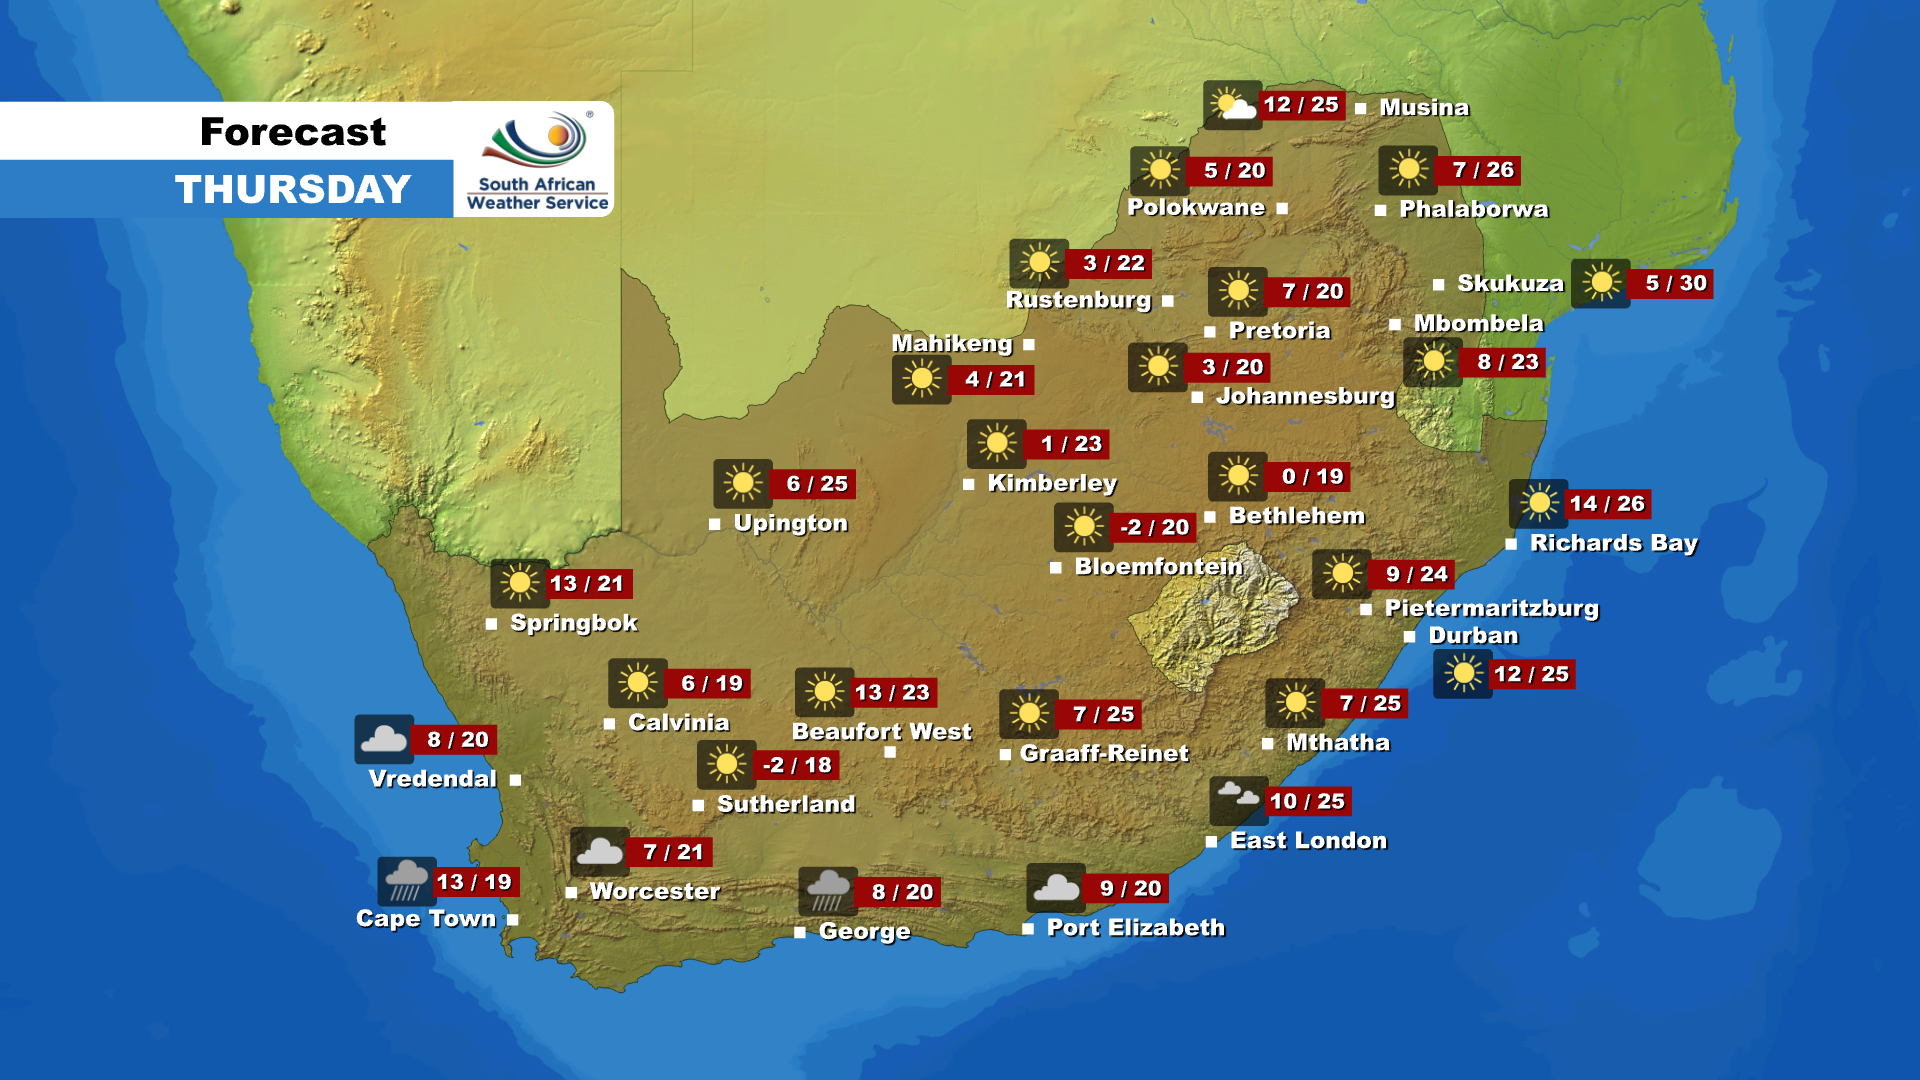 Here is the weather forecast for Wednesday 1 July 2020.